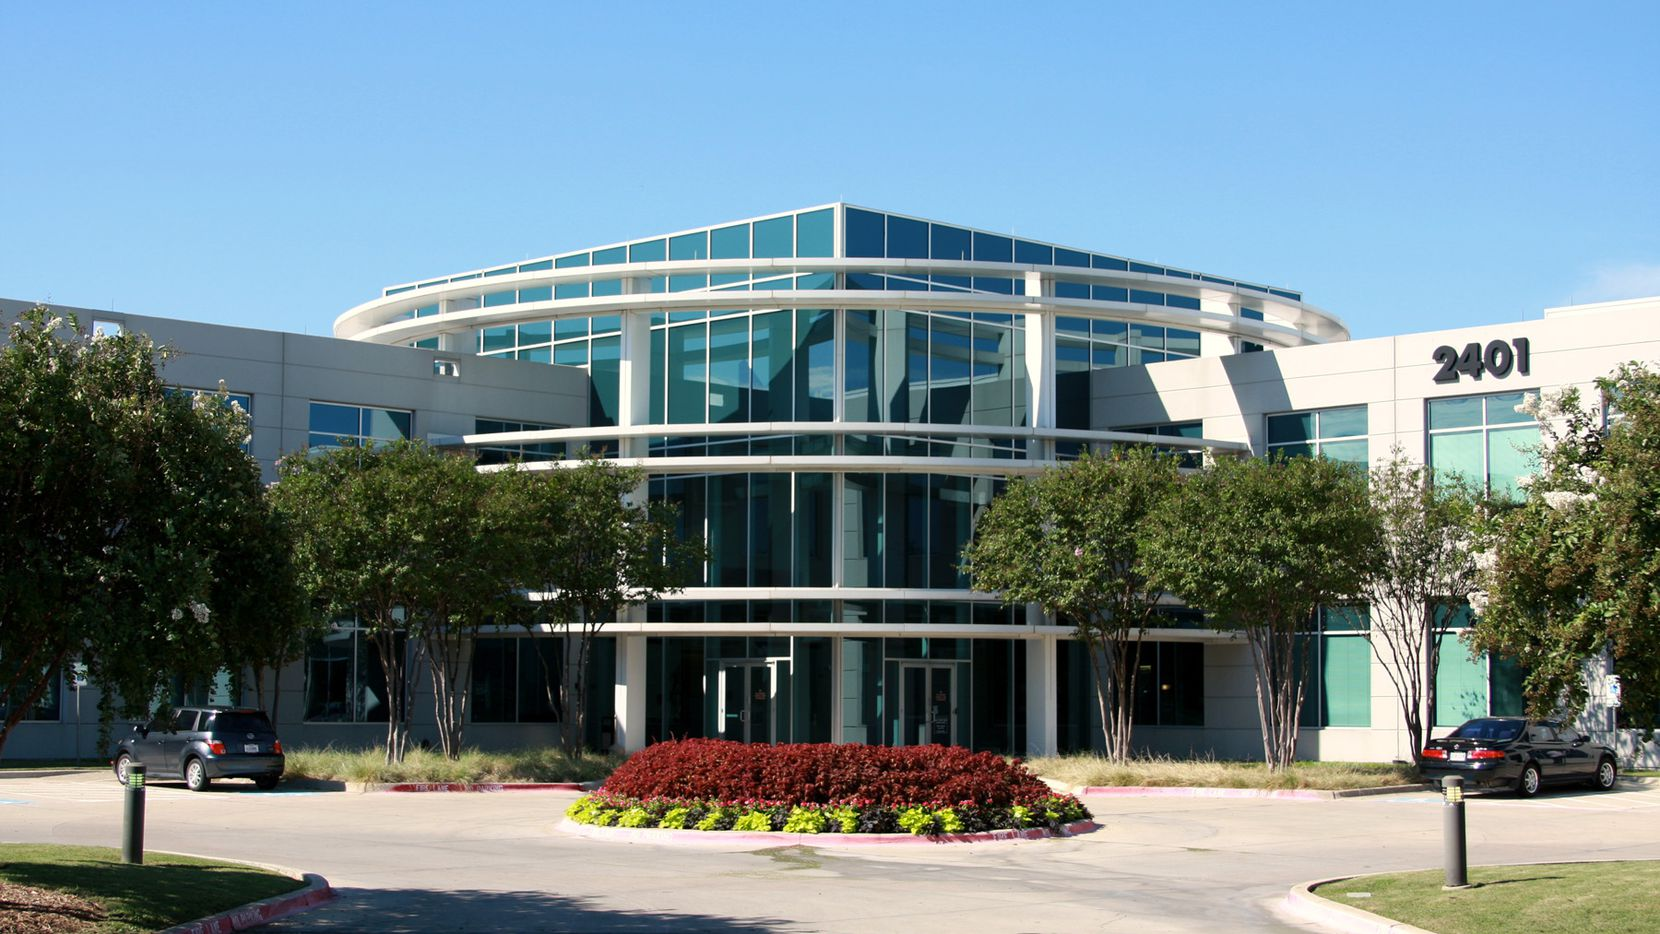 Abacus Group has leased office space at 2401 Internet Blvd. in Frisco.